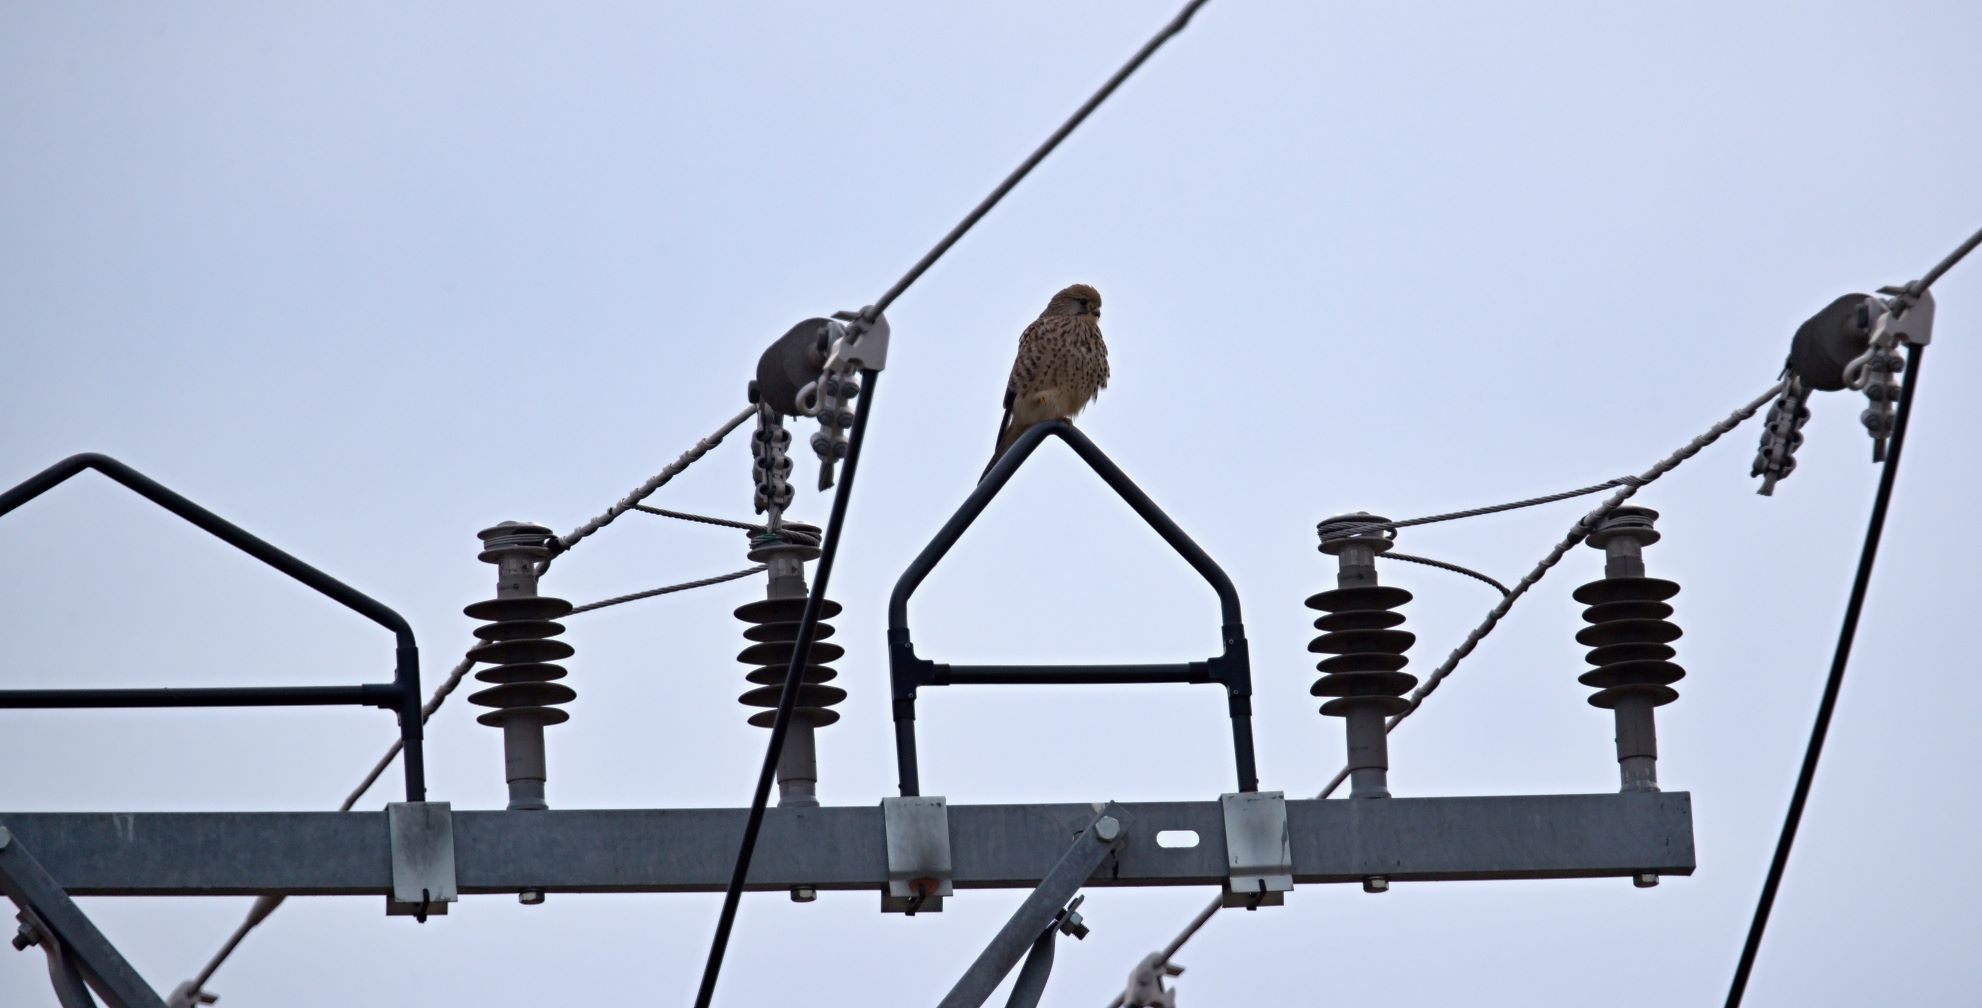 Illustration image of the Preventing electrocution project actions - Falcon sitting on the utility pole insulation equipment